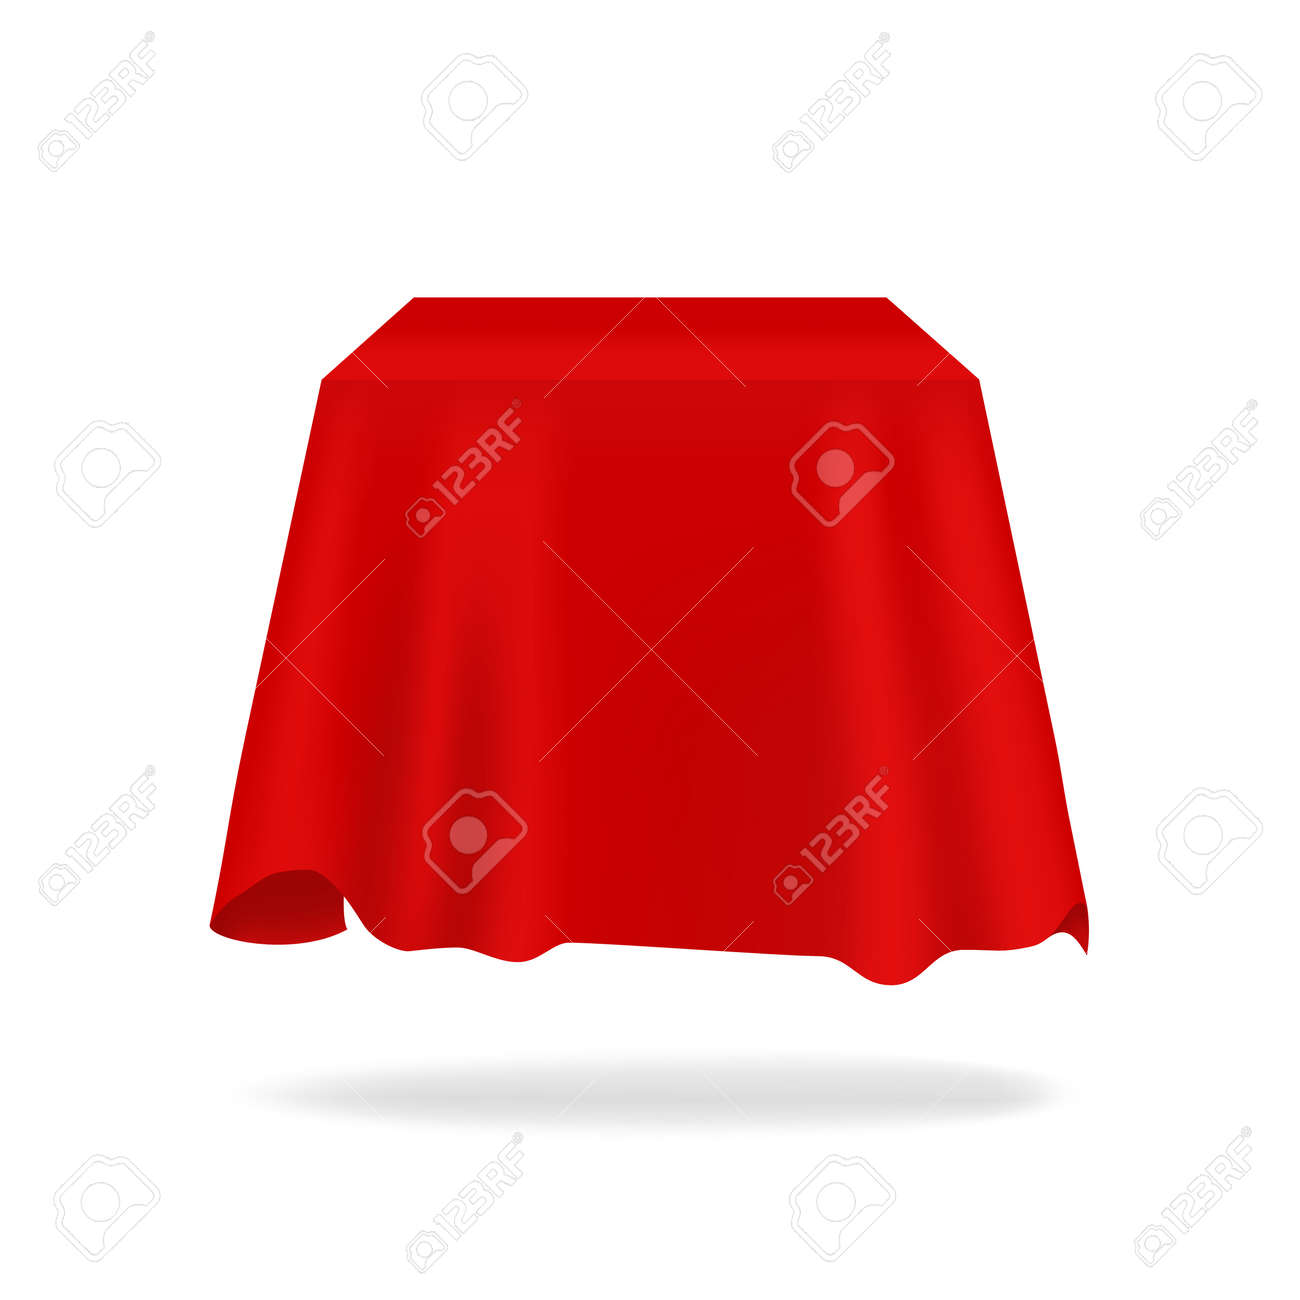 Red silk cover. Realistic secret box hidden under fabric. 3D bright flowing tablecloth mockup with folds. Exhibition drapery. Smooth satin material. Vector blank presentation drape - 167723708